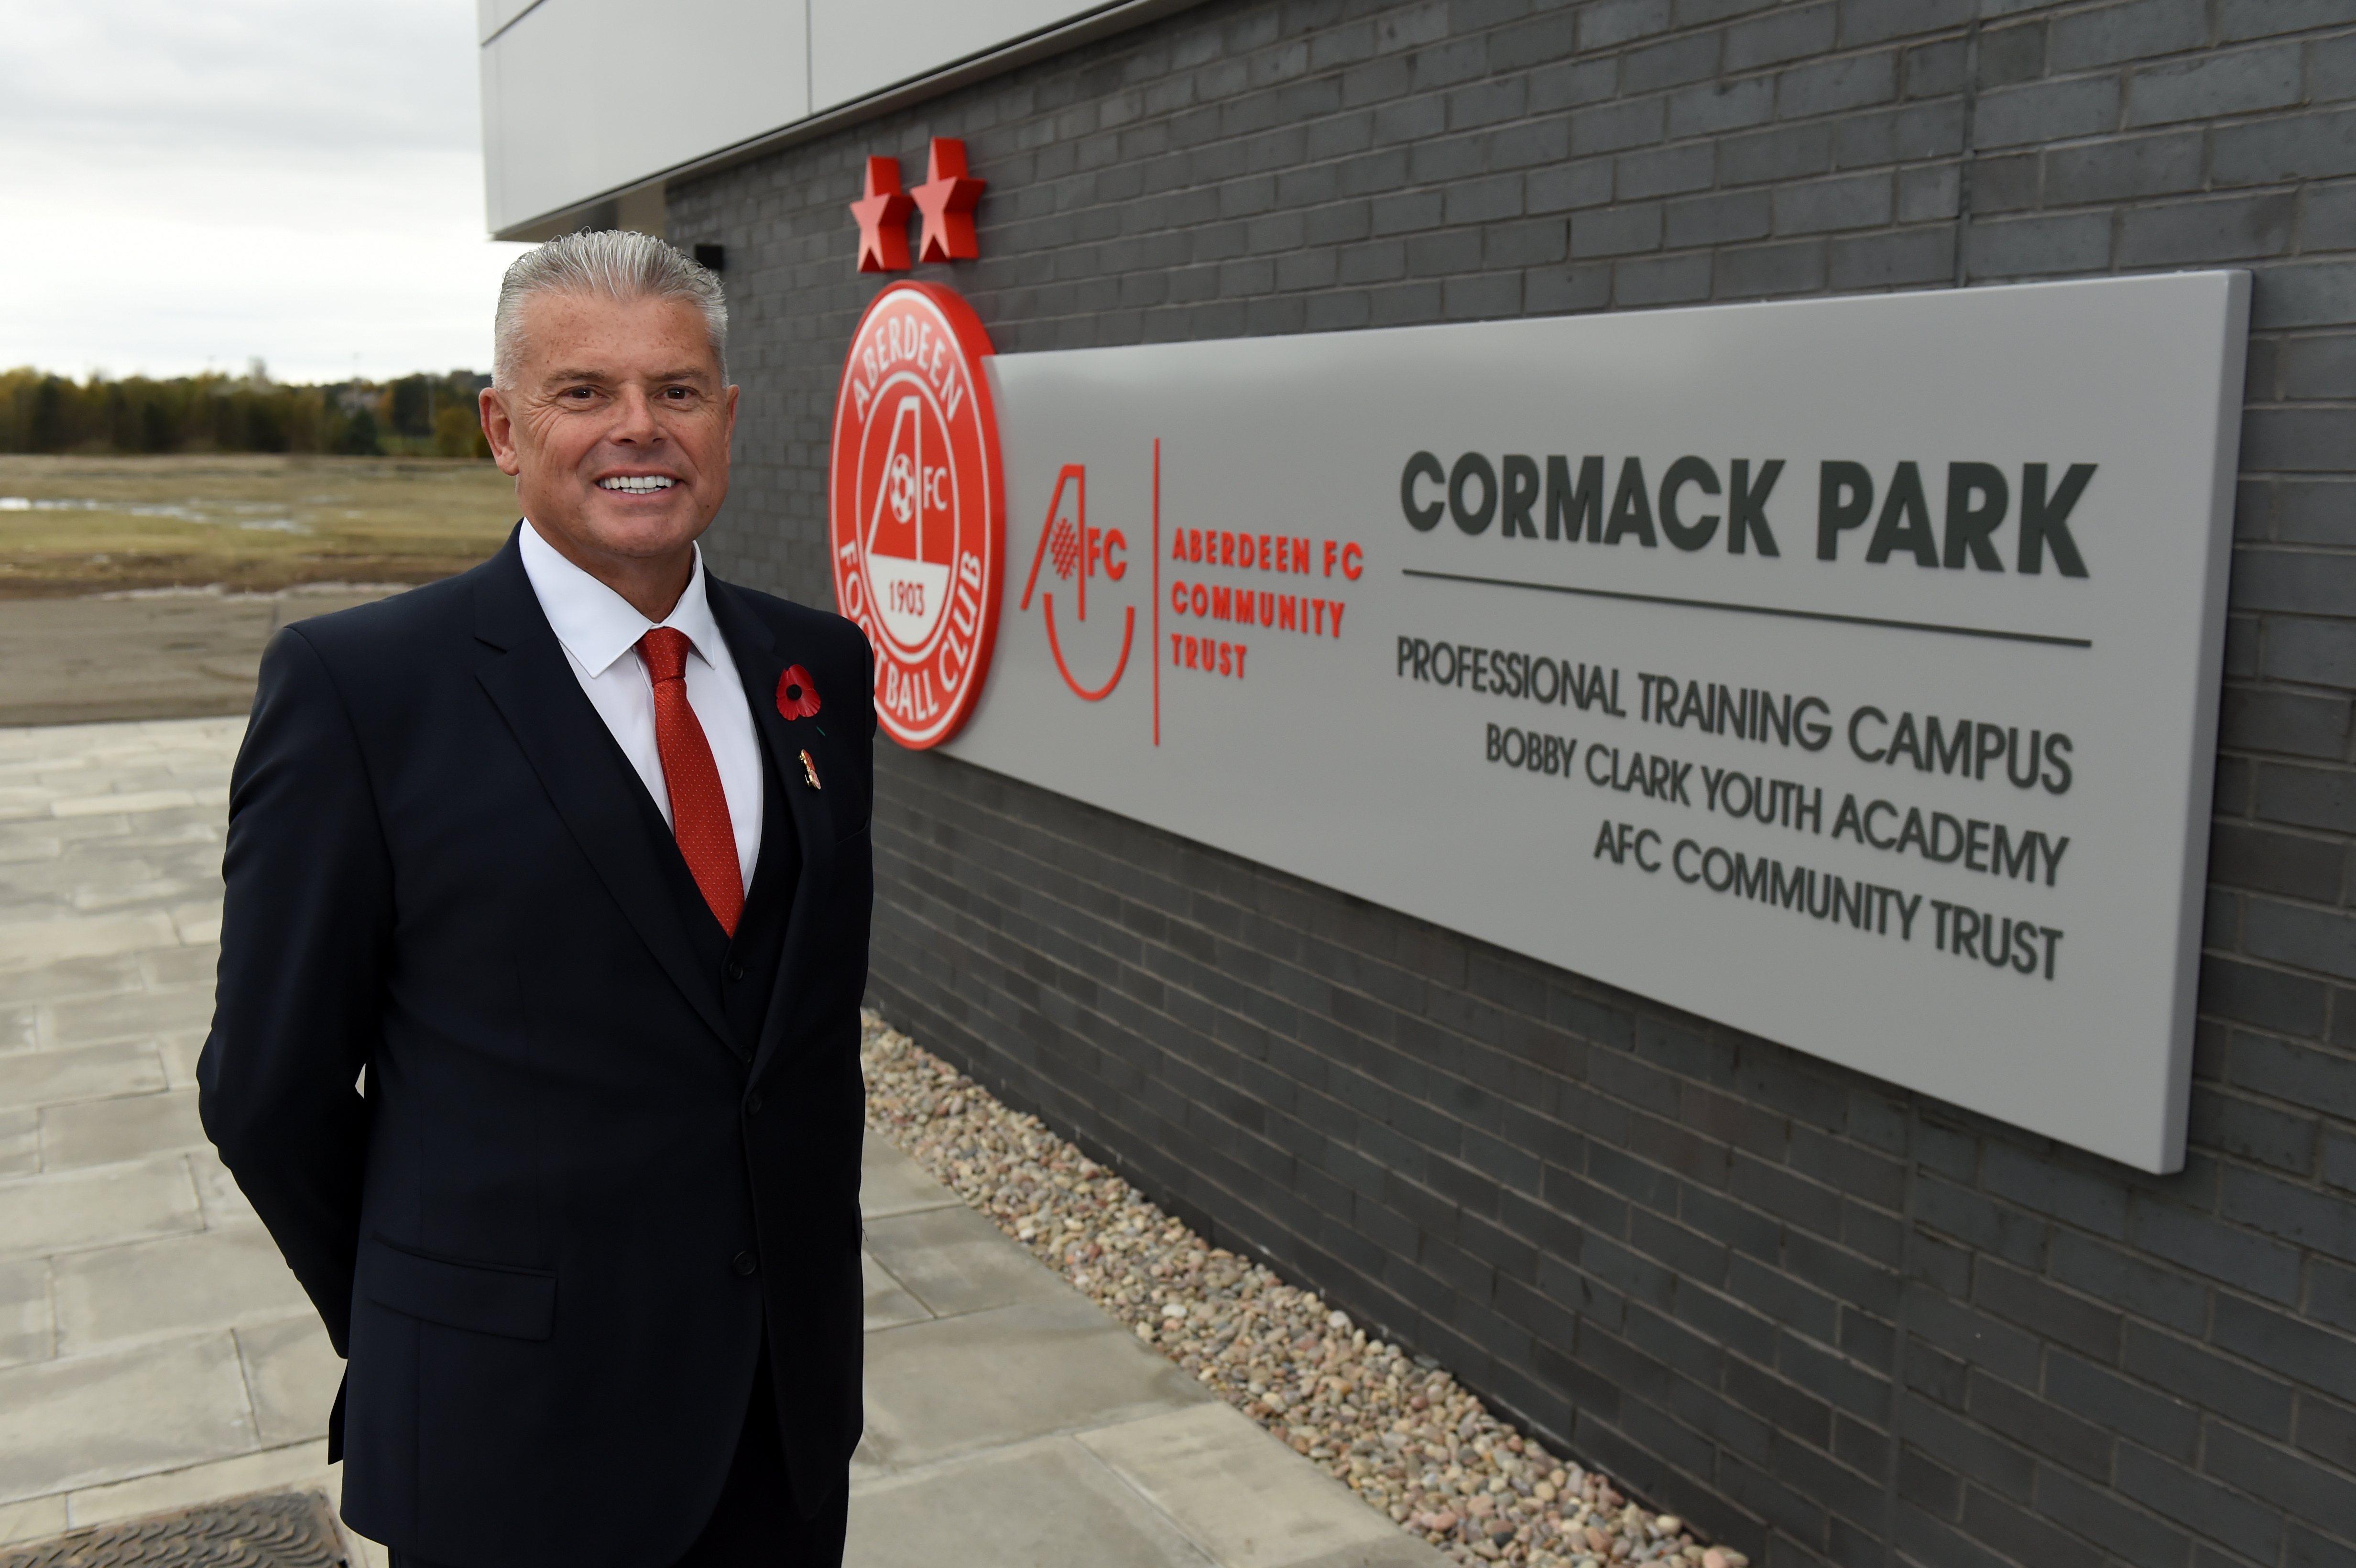 Aberdeen vice-chairman Dave Cormack, at the opening of the training campus that bears his name.